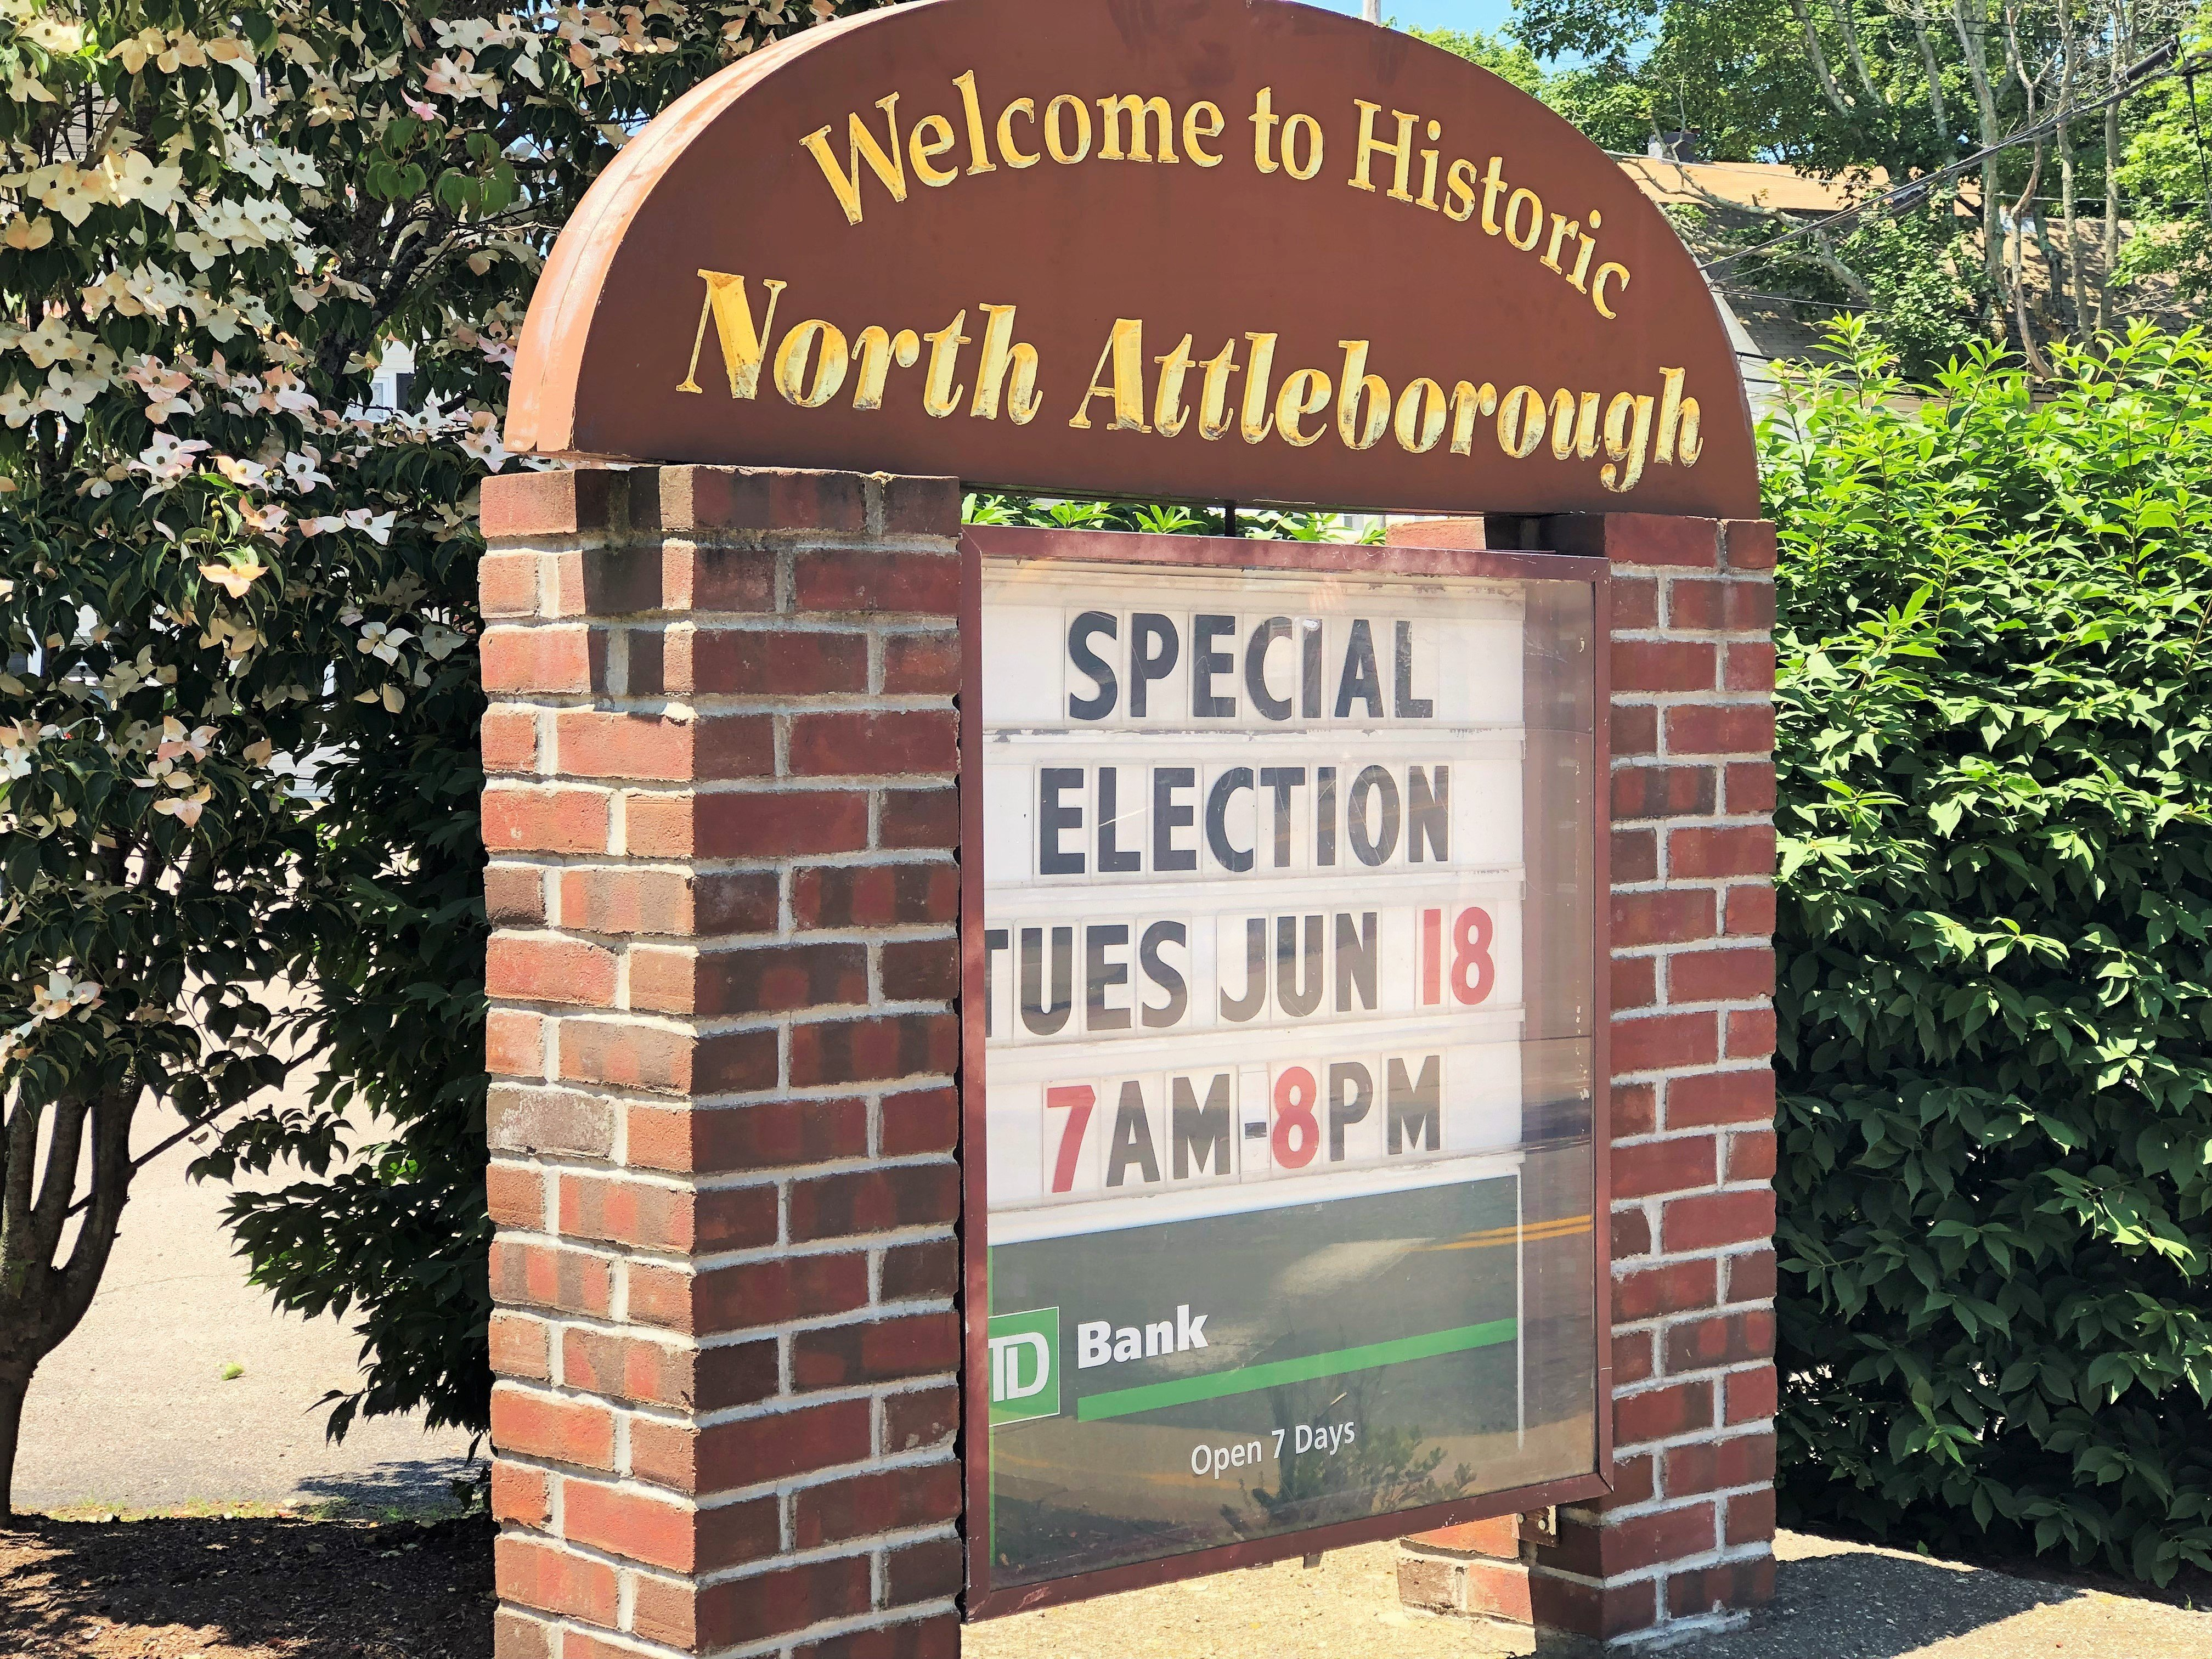 Town of North Attleborough sign